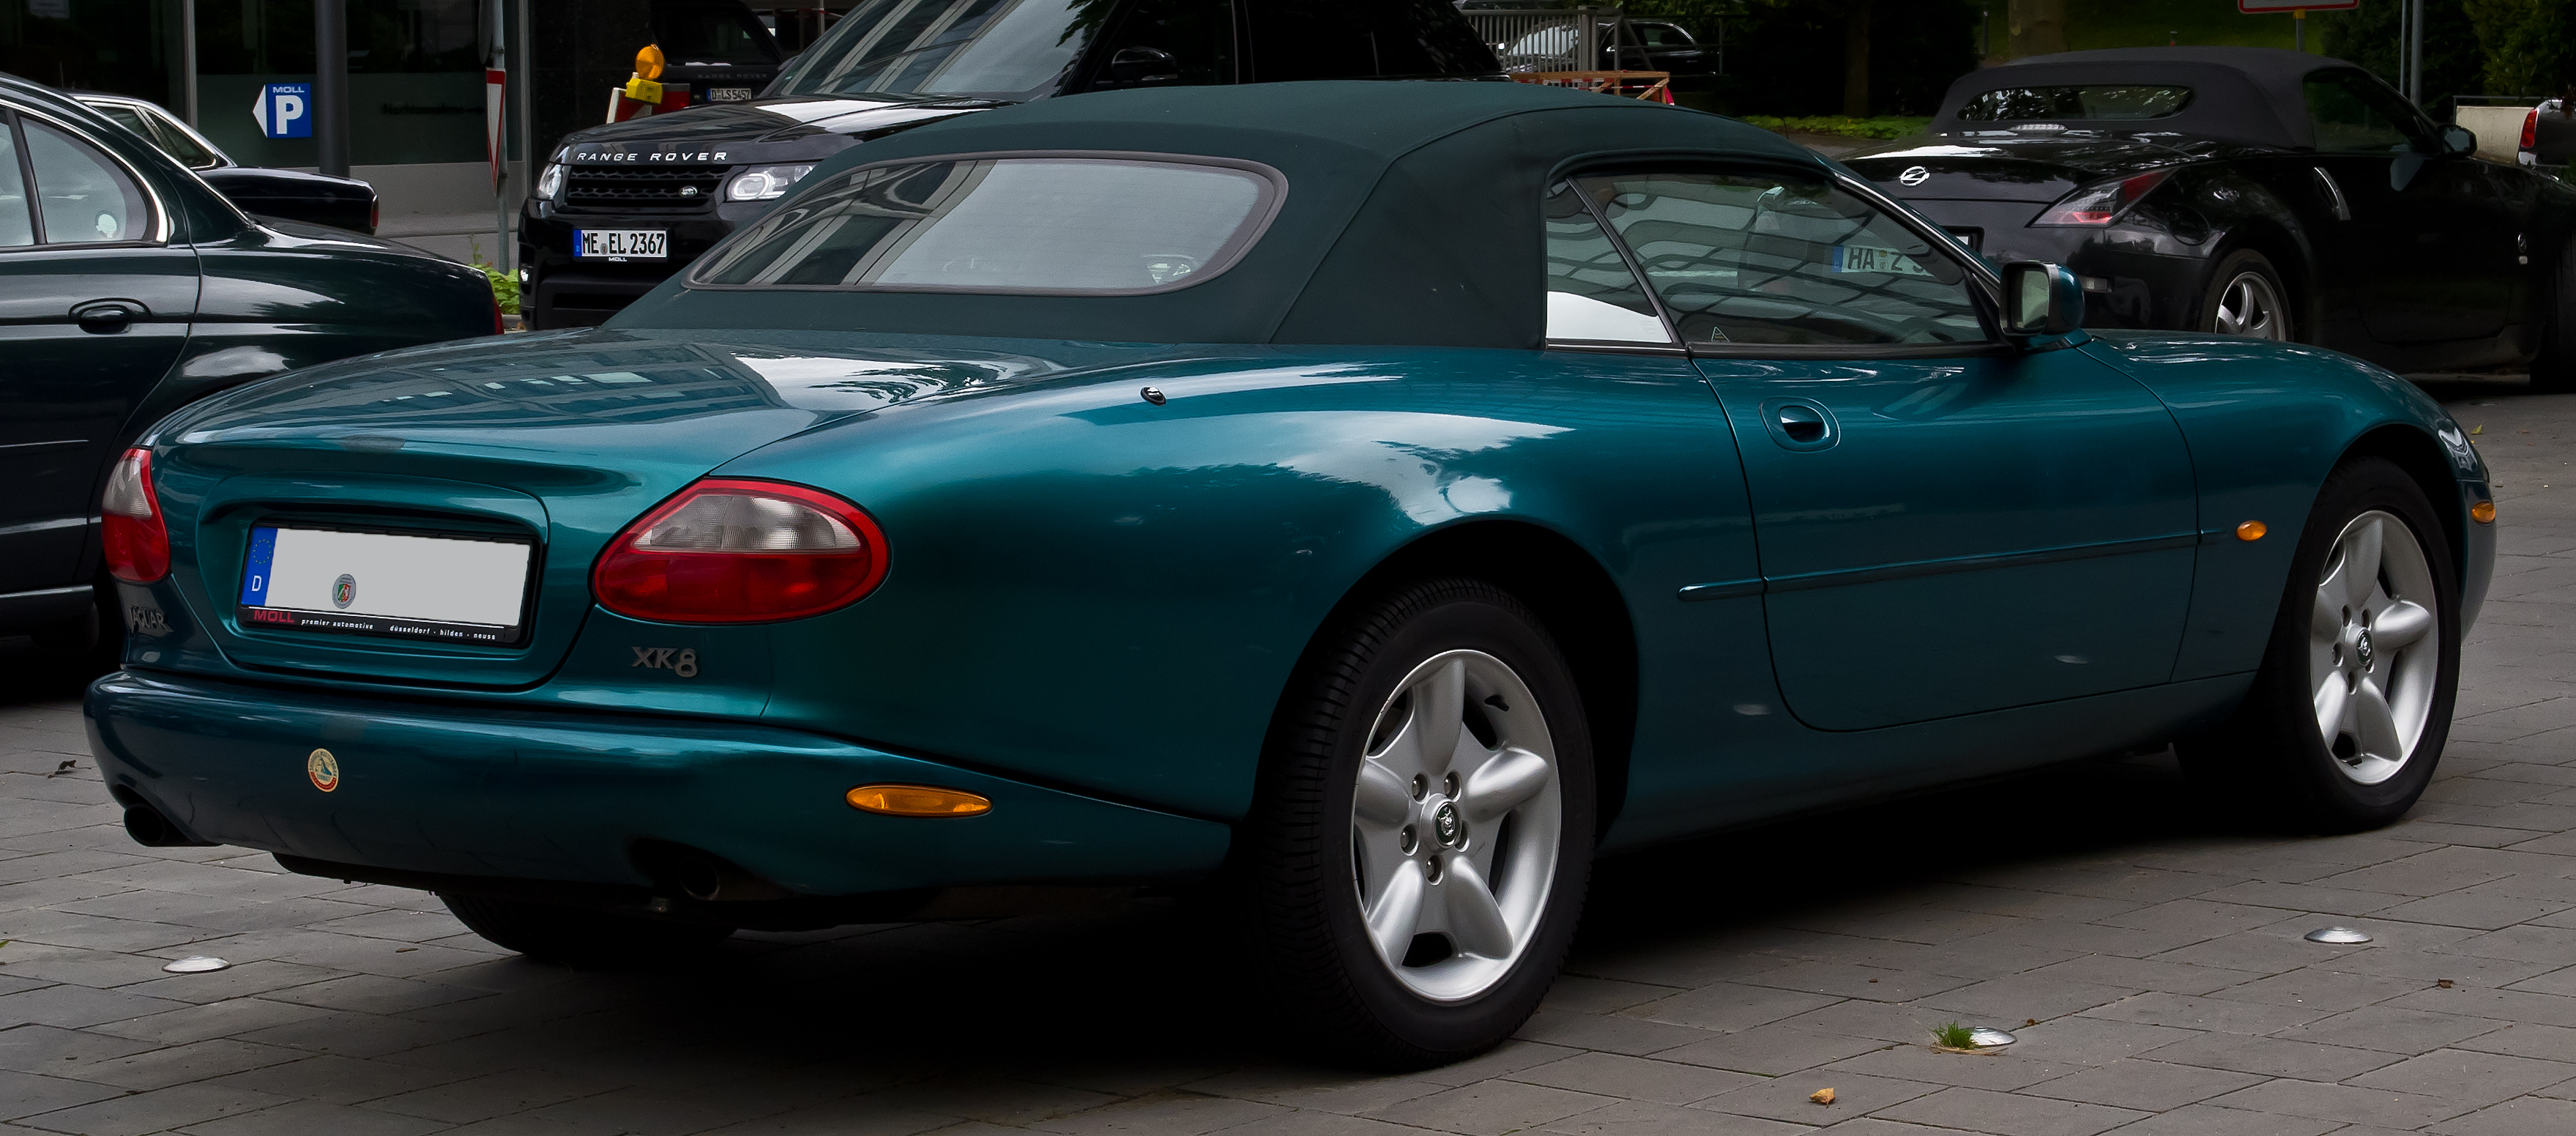 pretty as angle thread best the jaguar not still jjdvxoi rides in but front retro